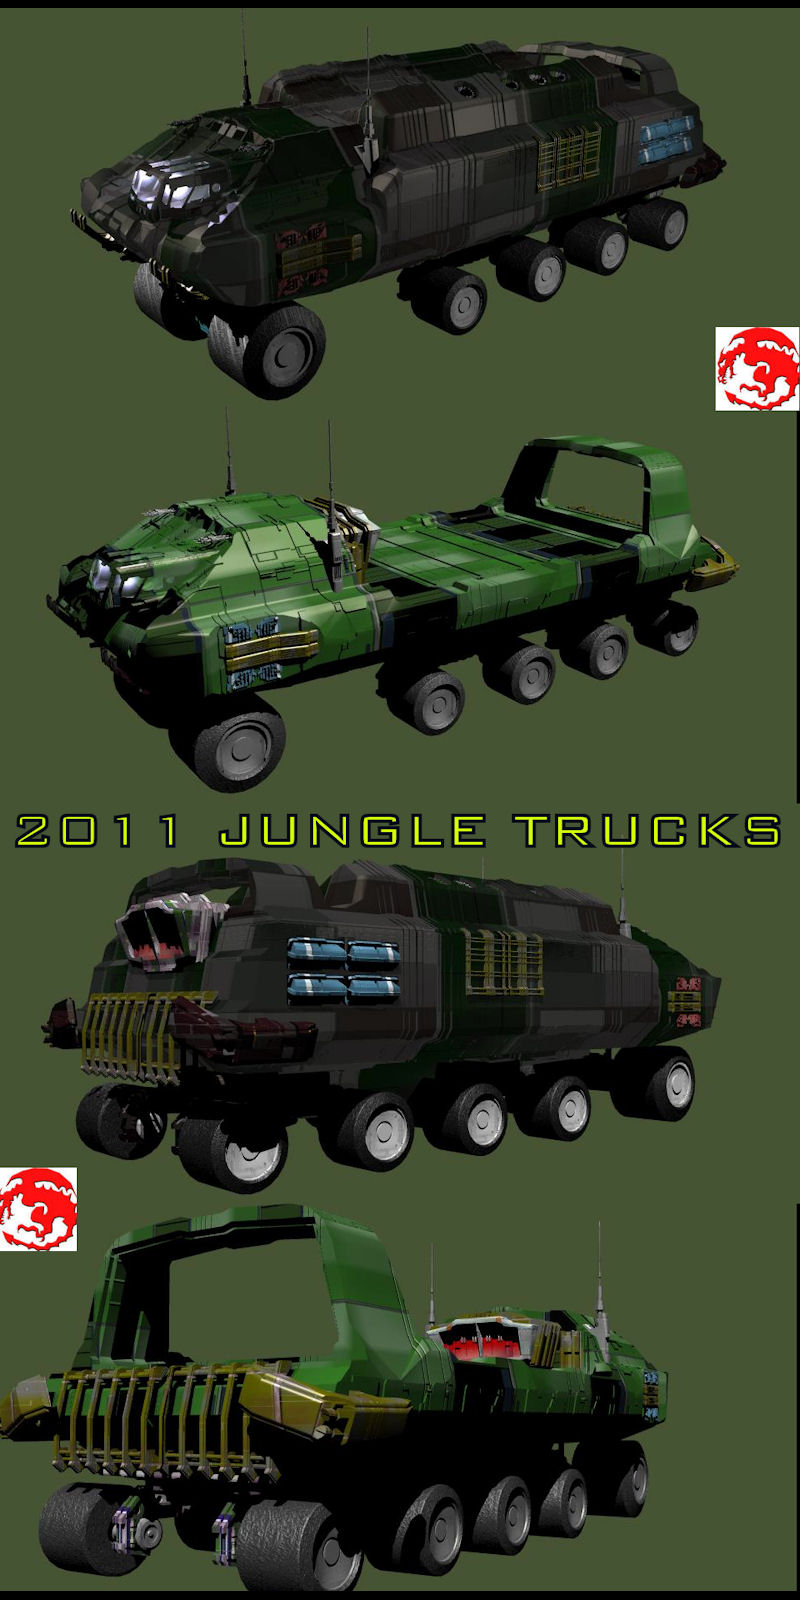 2011 JUNGLE TRUCKS